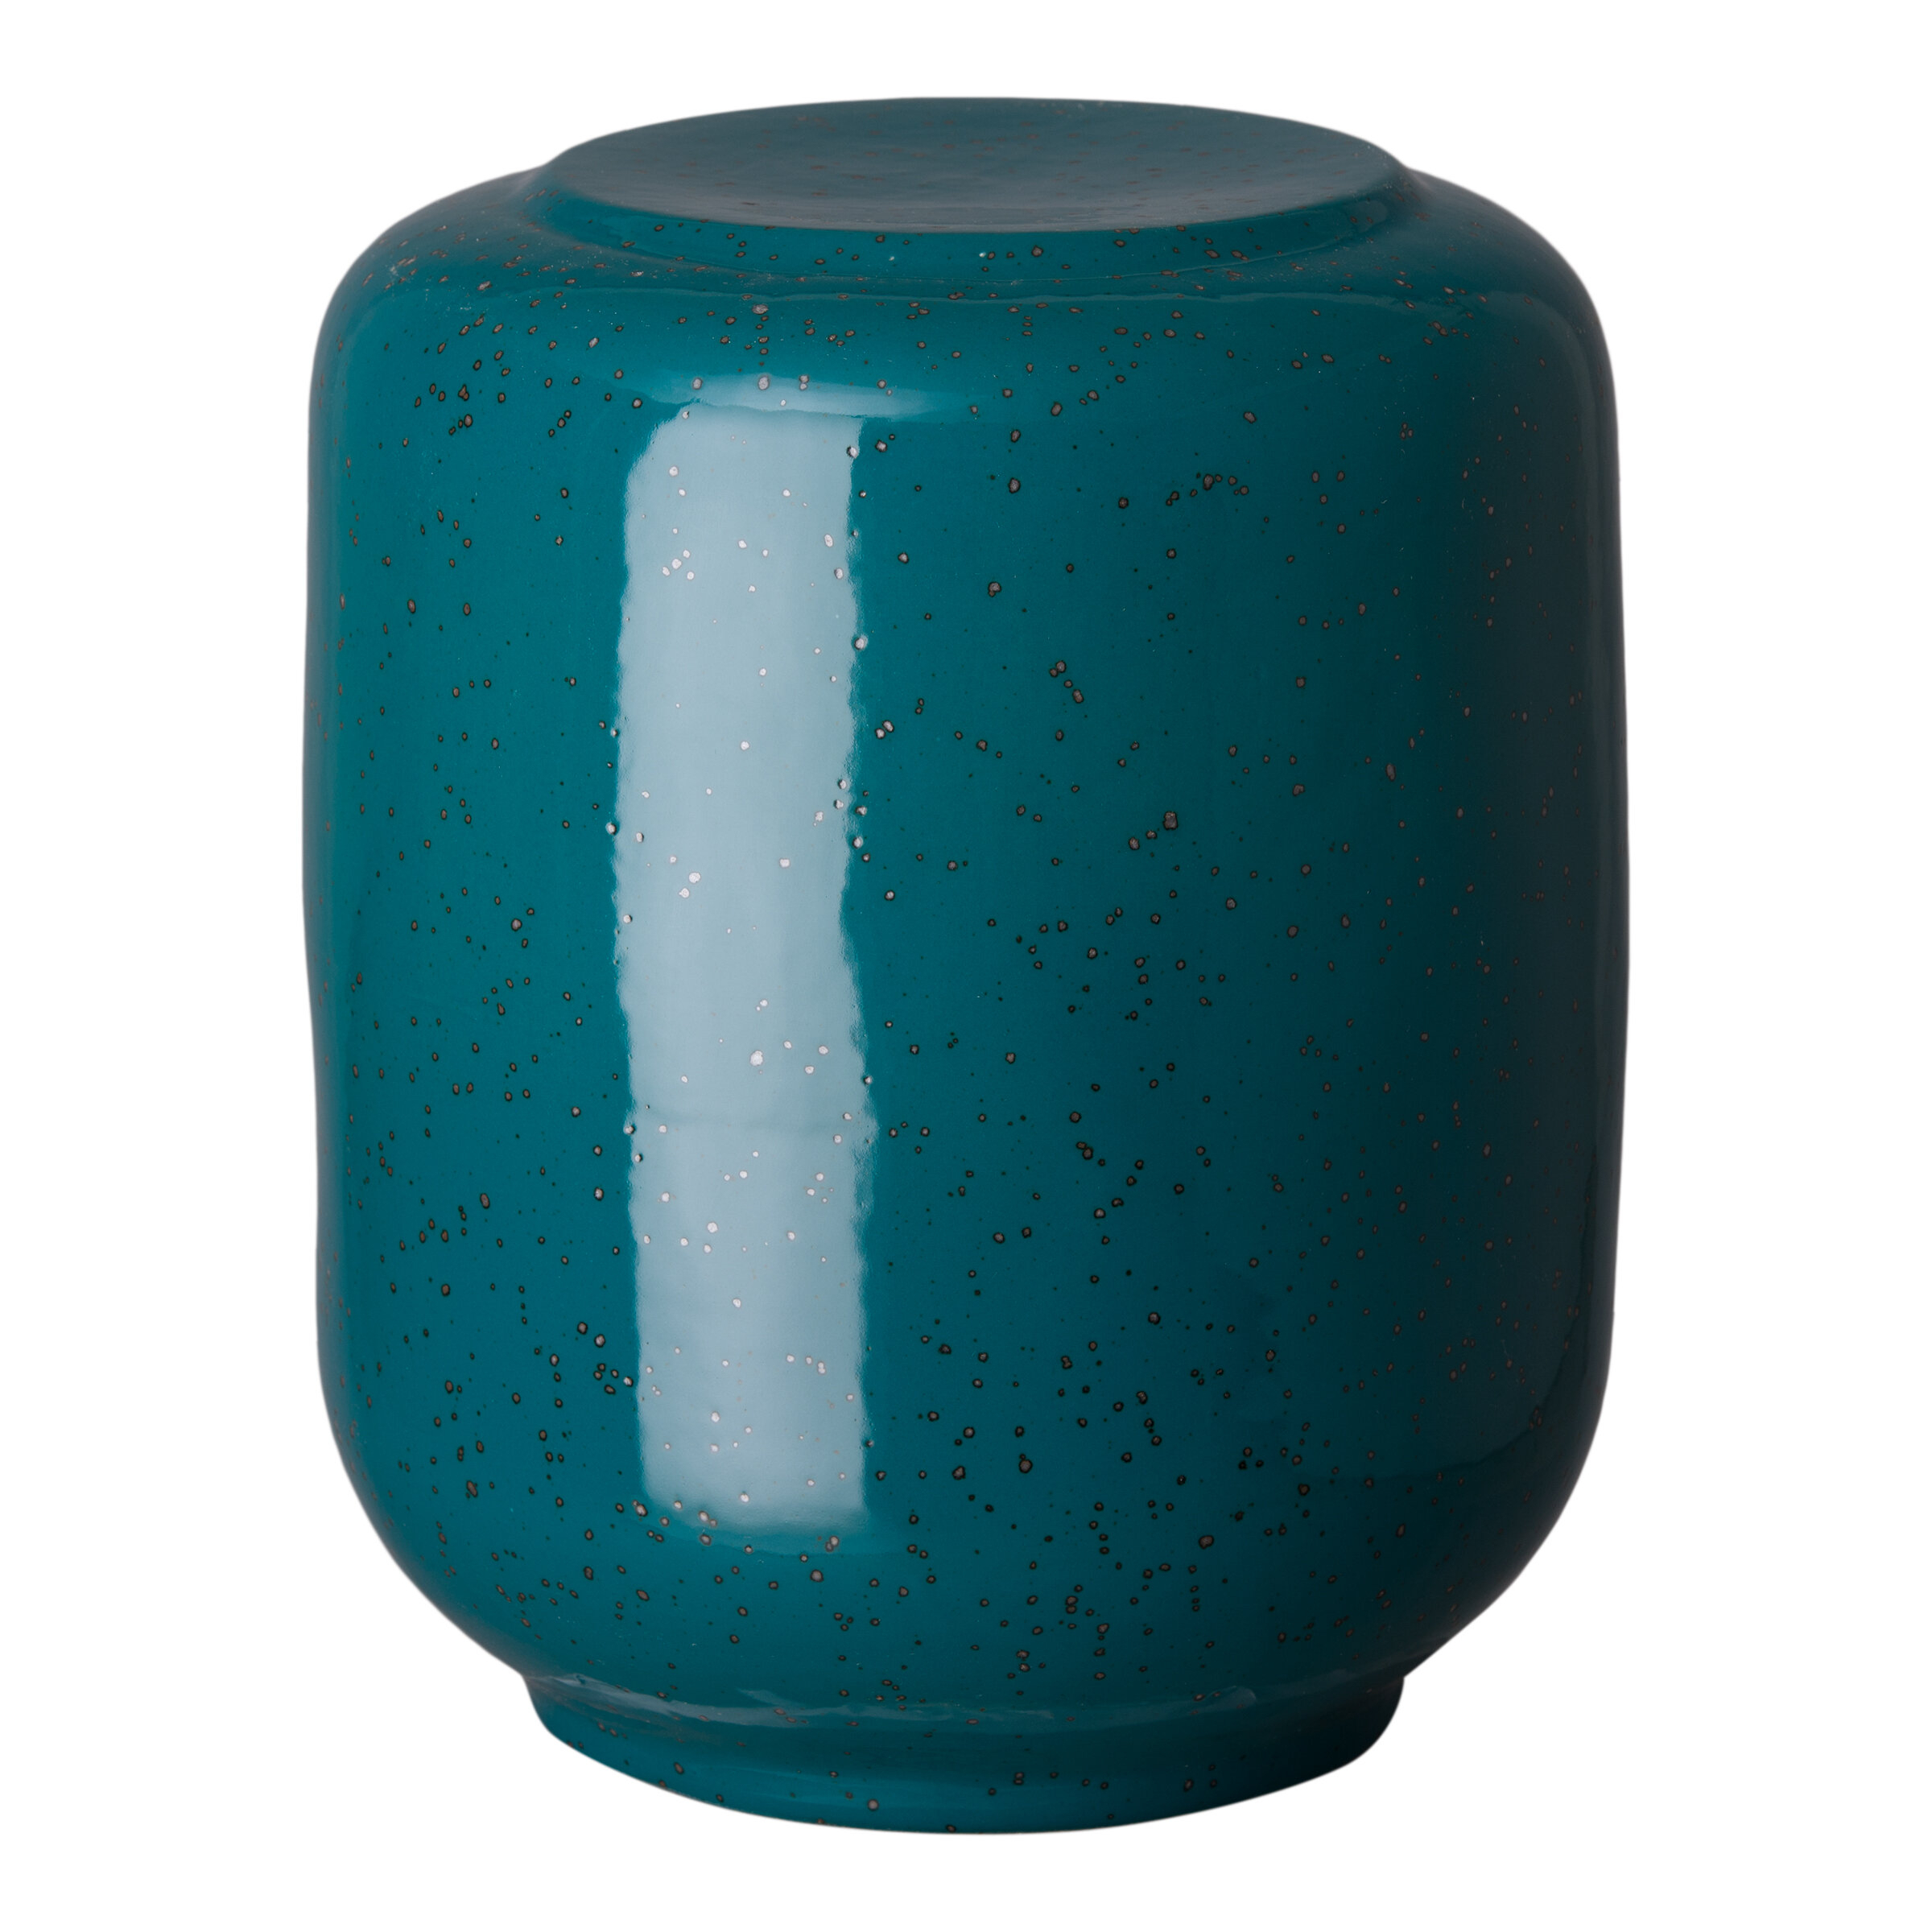 Karinna Ceramic Garden Stool With Karlov Ceramic Garden Stools (View 5 of 25)